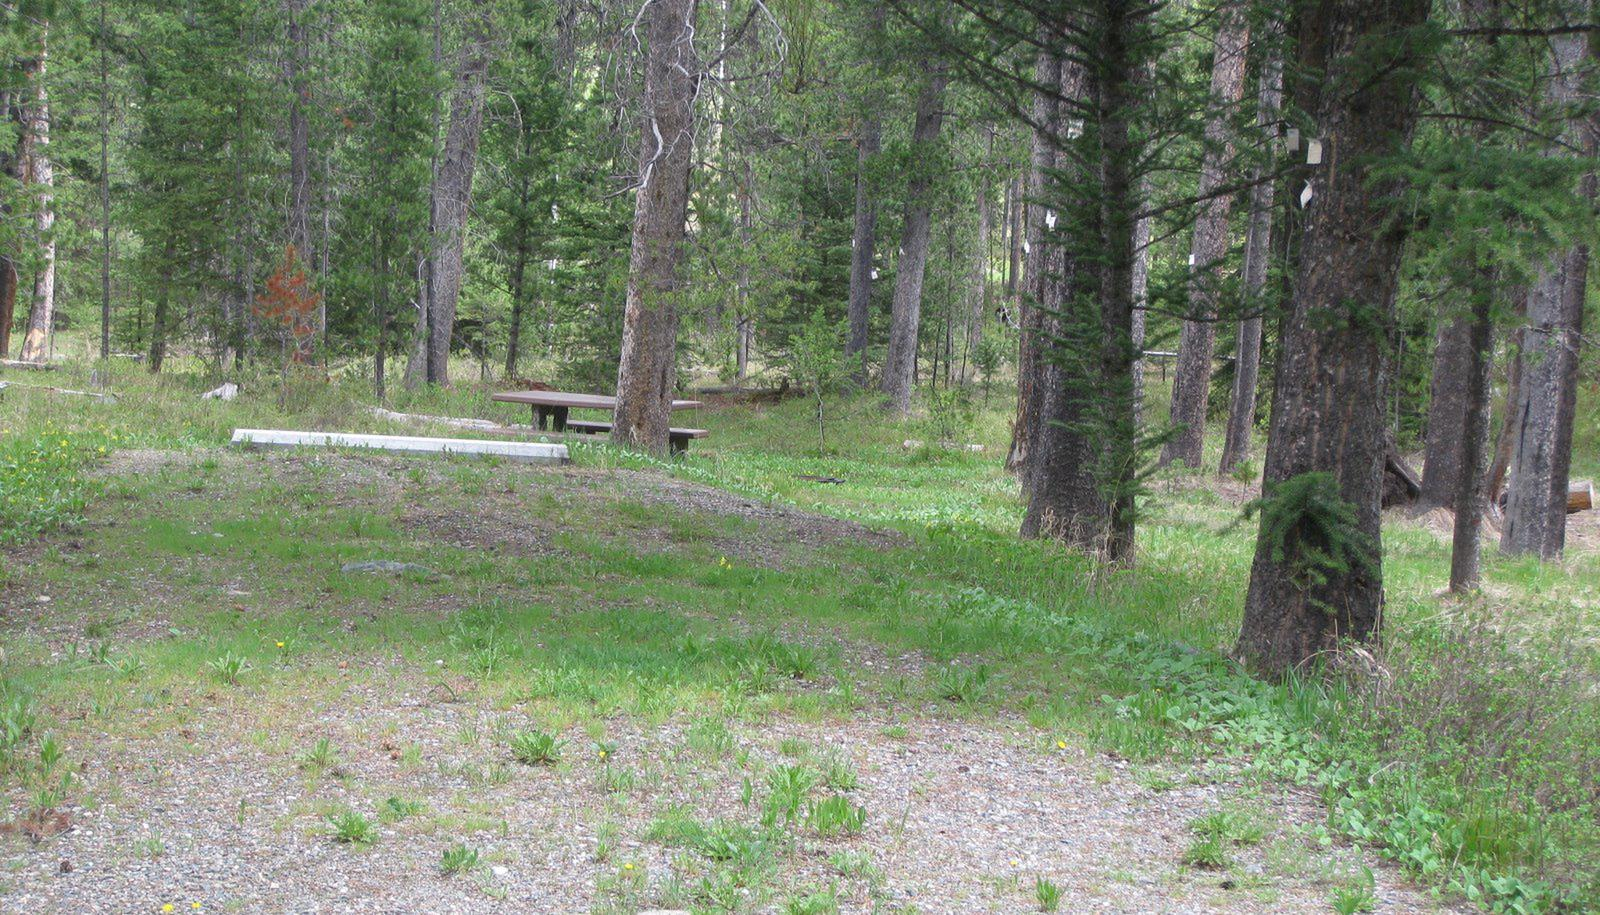 Site C16, campsite surrounded by pine trees, picnic table & fire ringSite C16